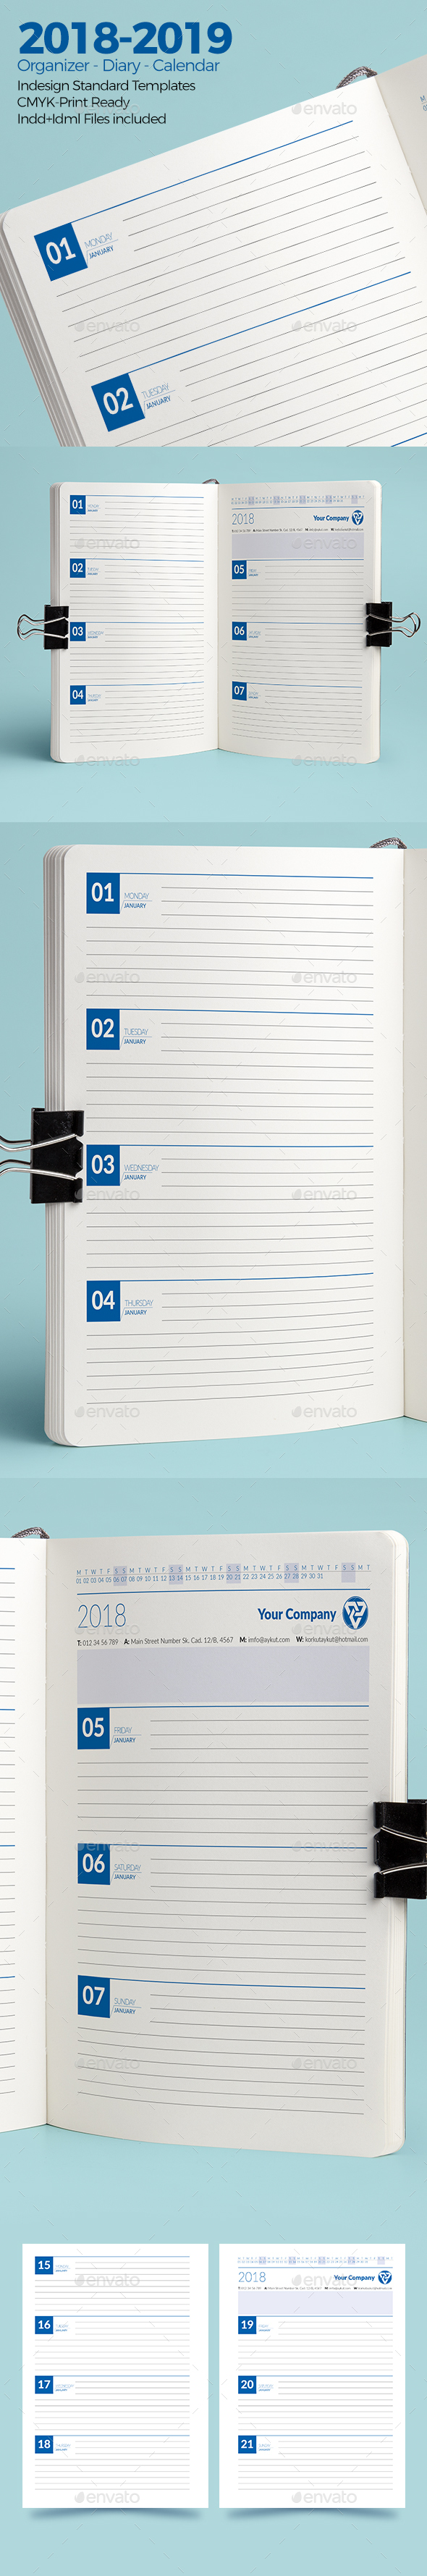 GraphicRiver Weekly Diary Planner 2018-2019 20965785